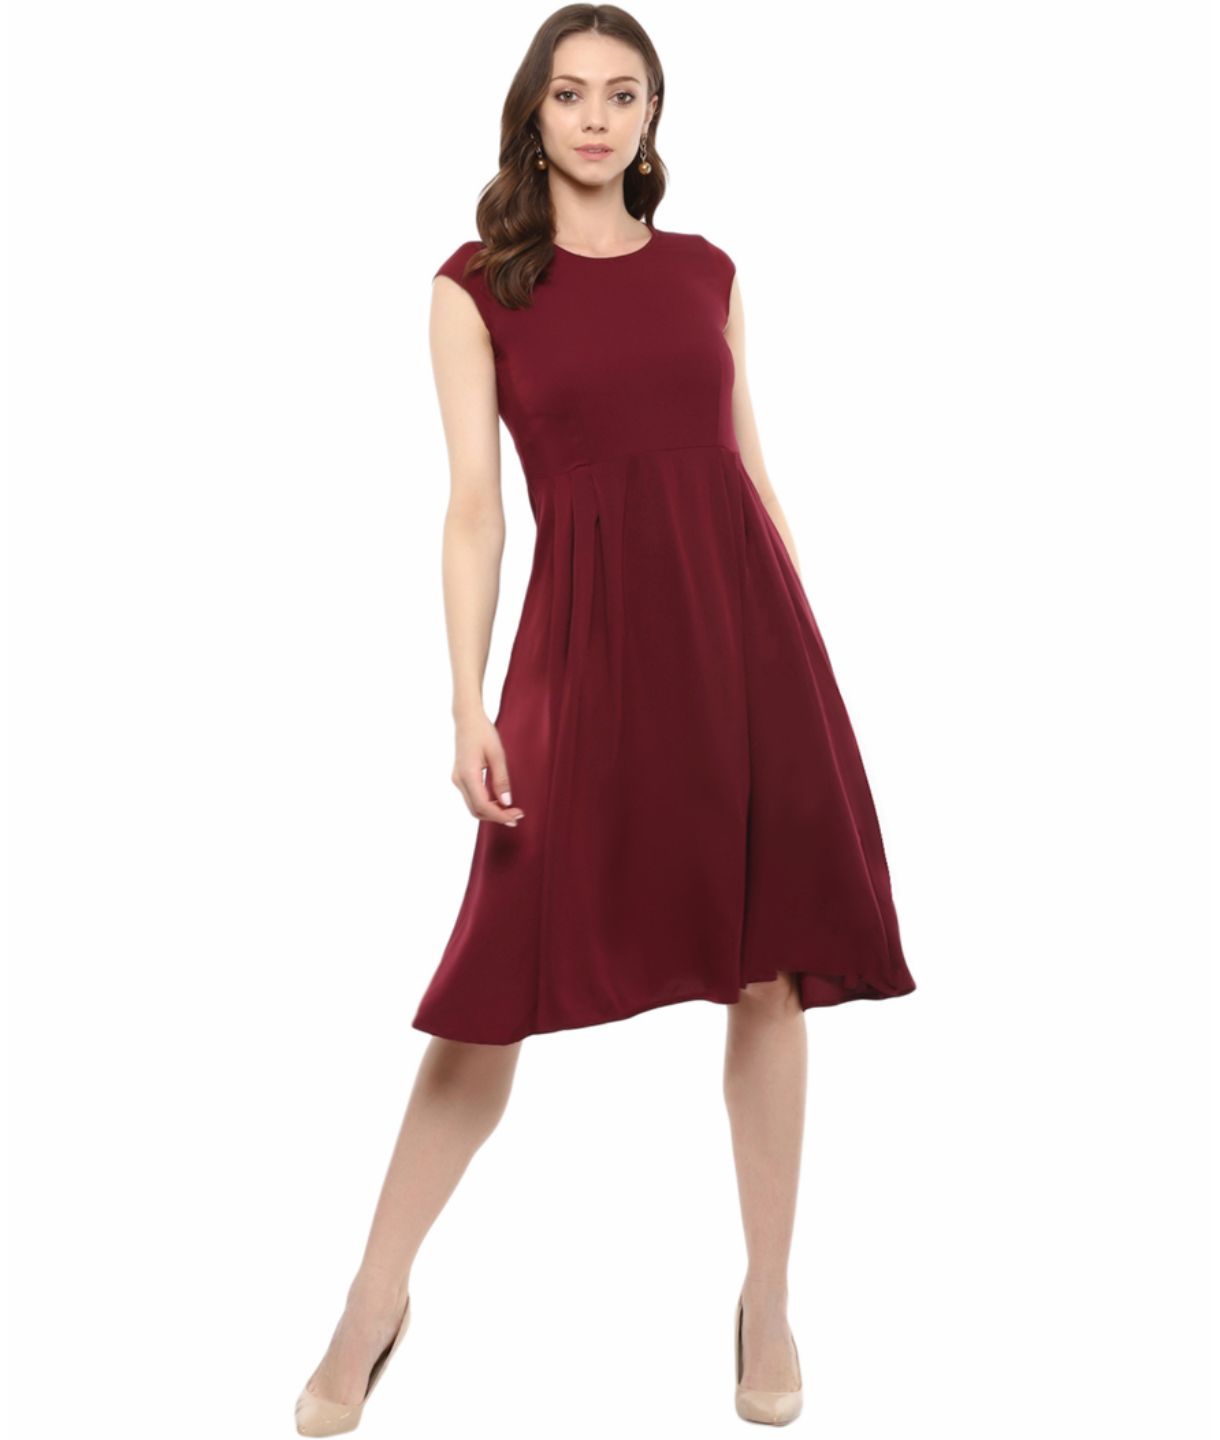 Uptownie Plus Maroon Solid Cap Sleeves Skater Dress